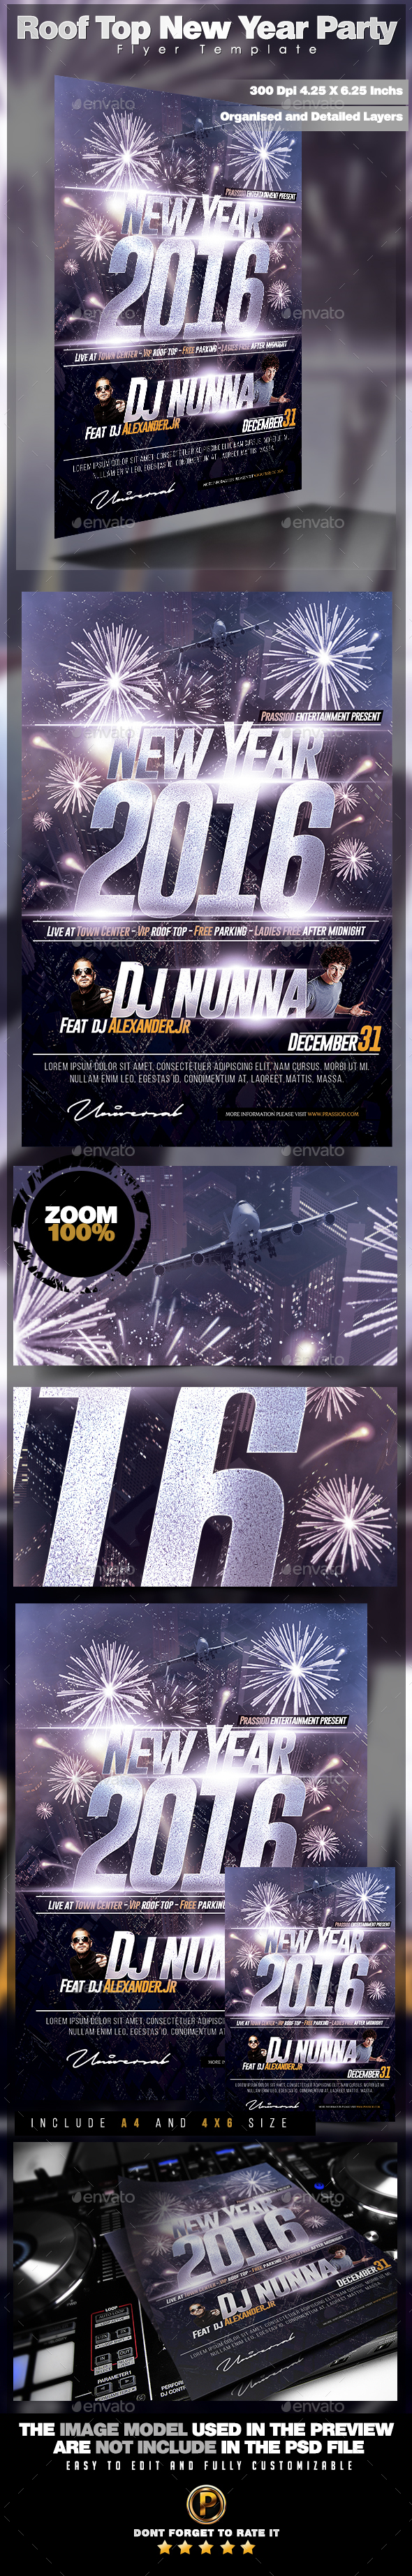 Roof Top New Year Party Flyer Template - Events Flyers